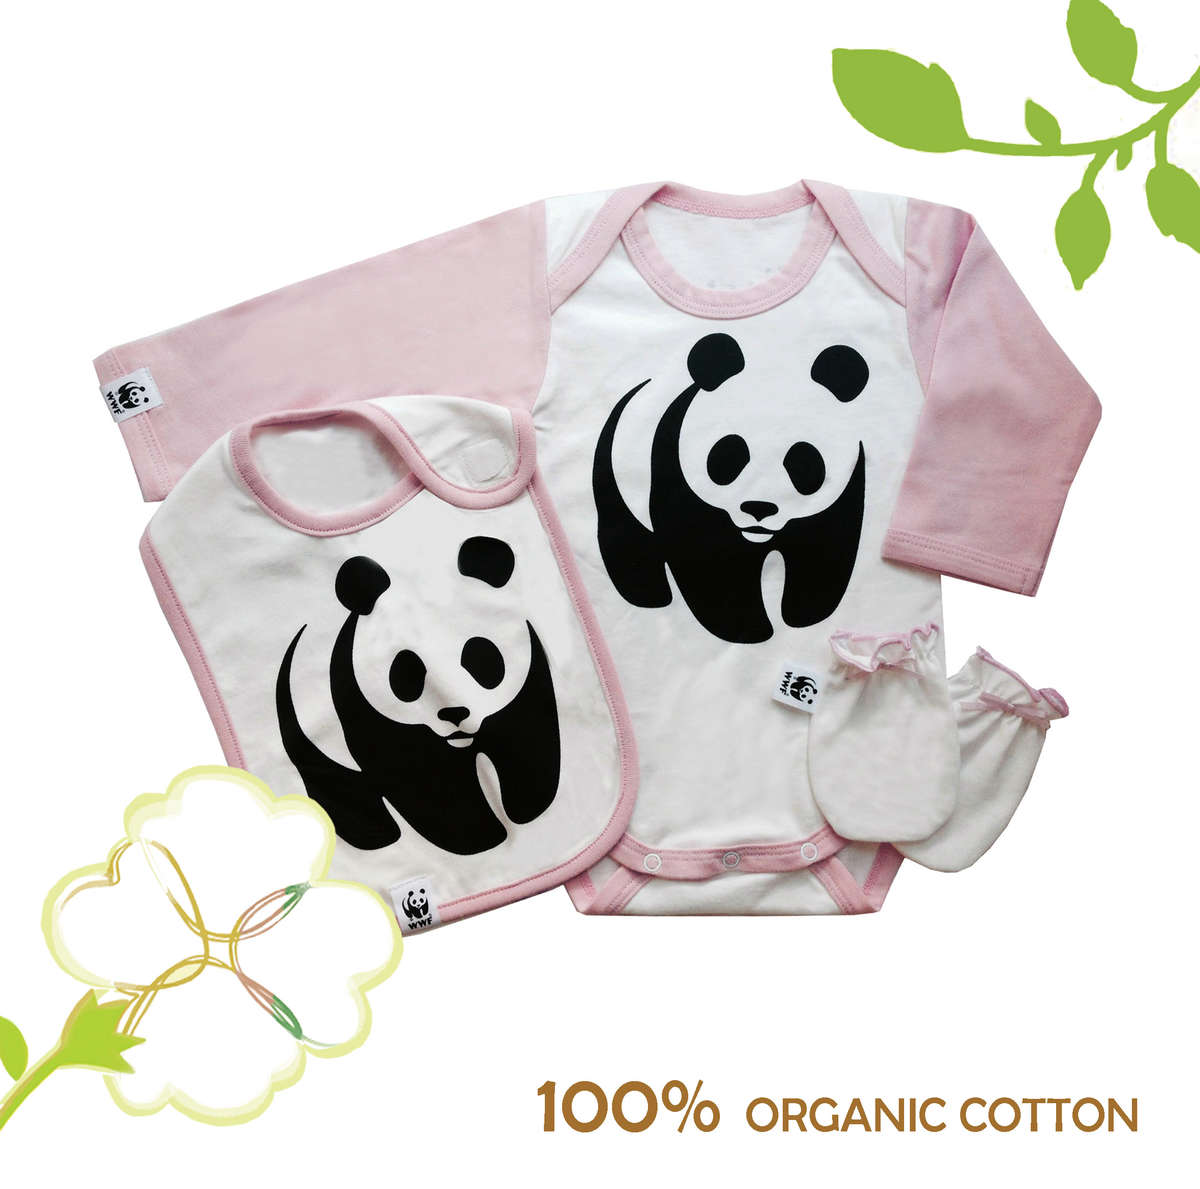 100% Organic Cotton - Panda Baby Cloth Set